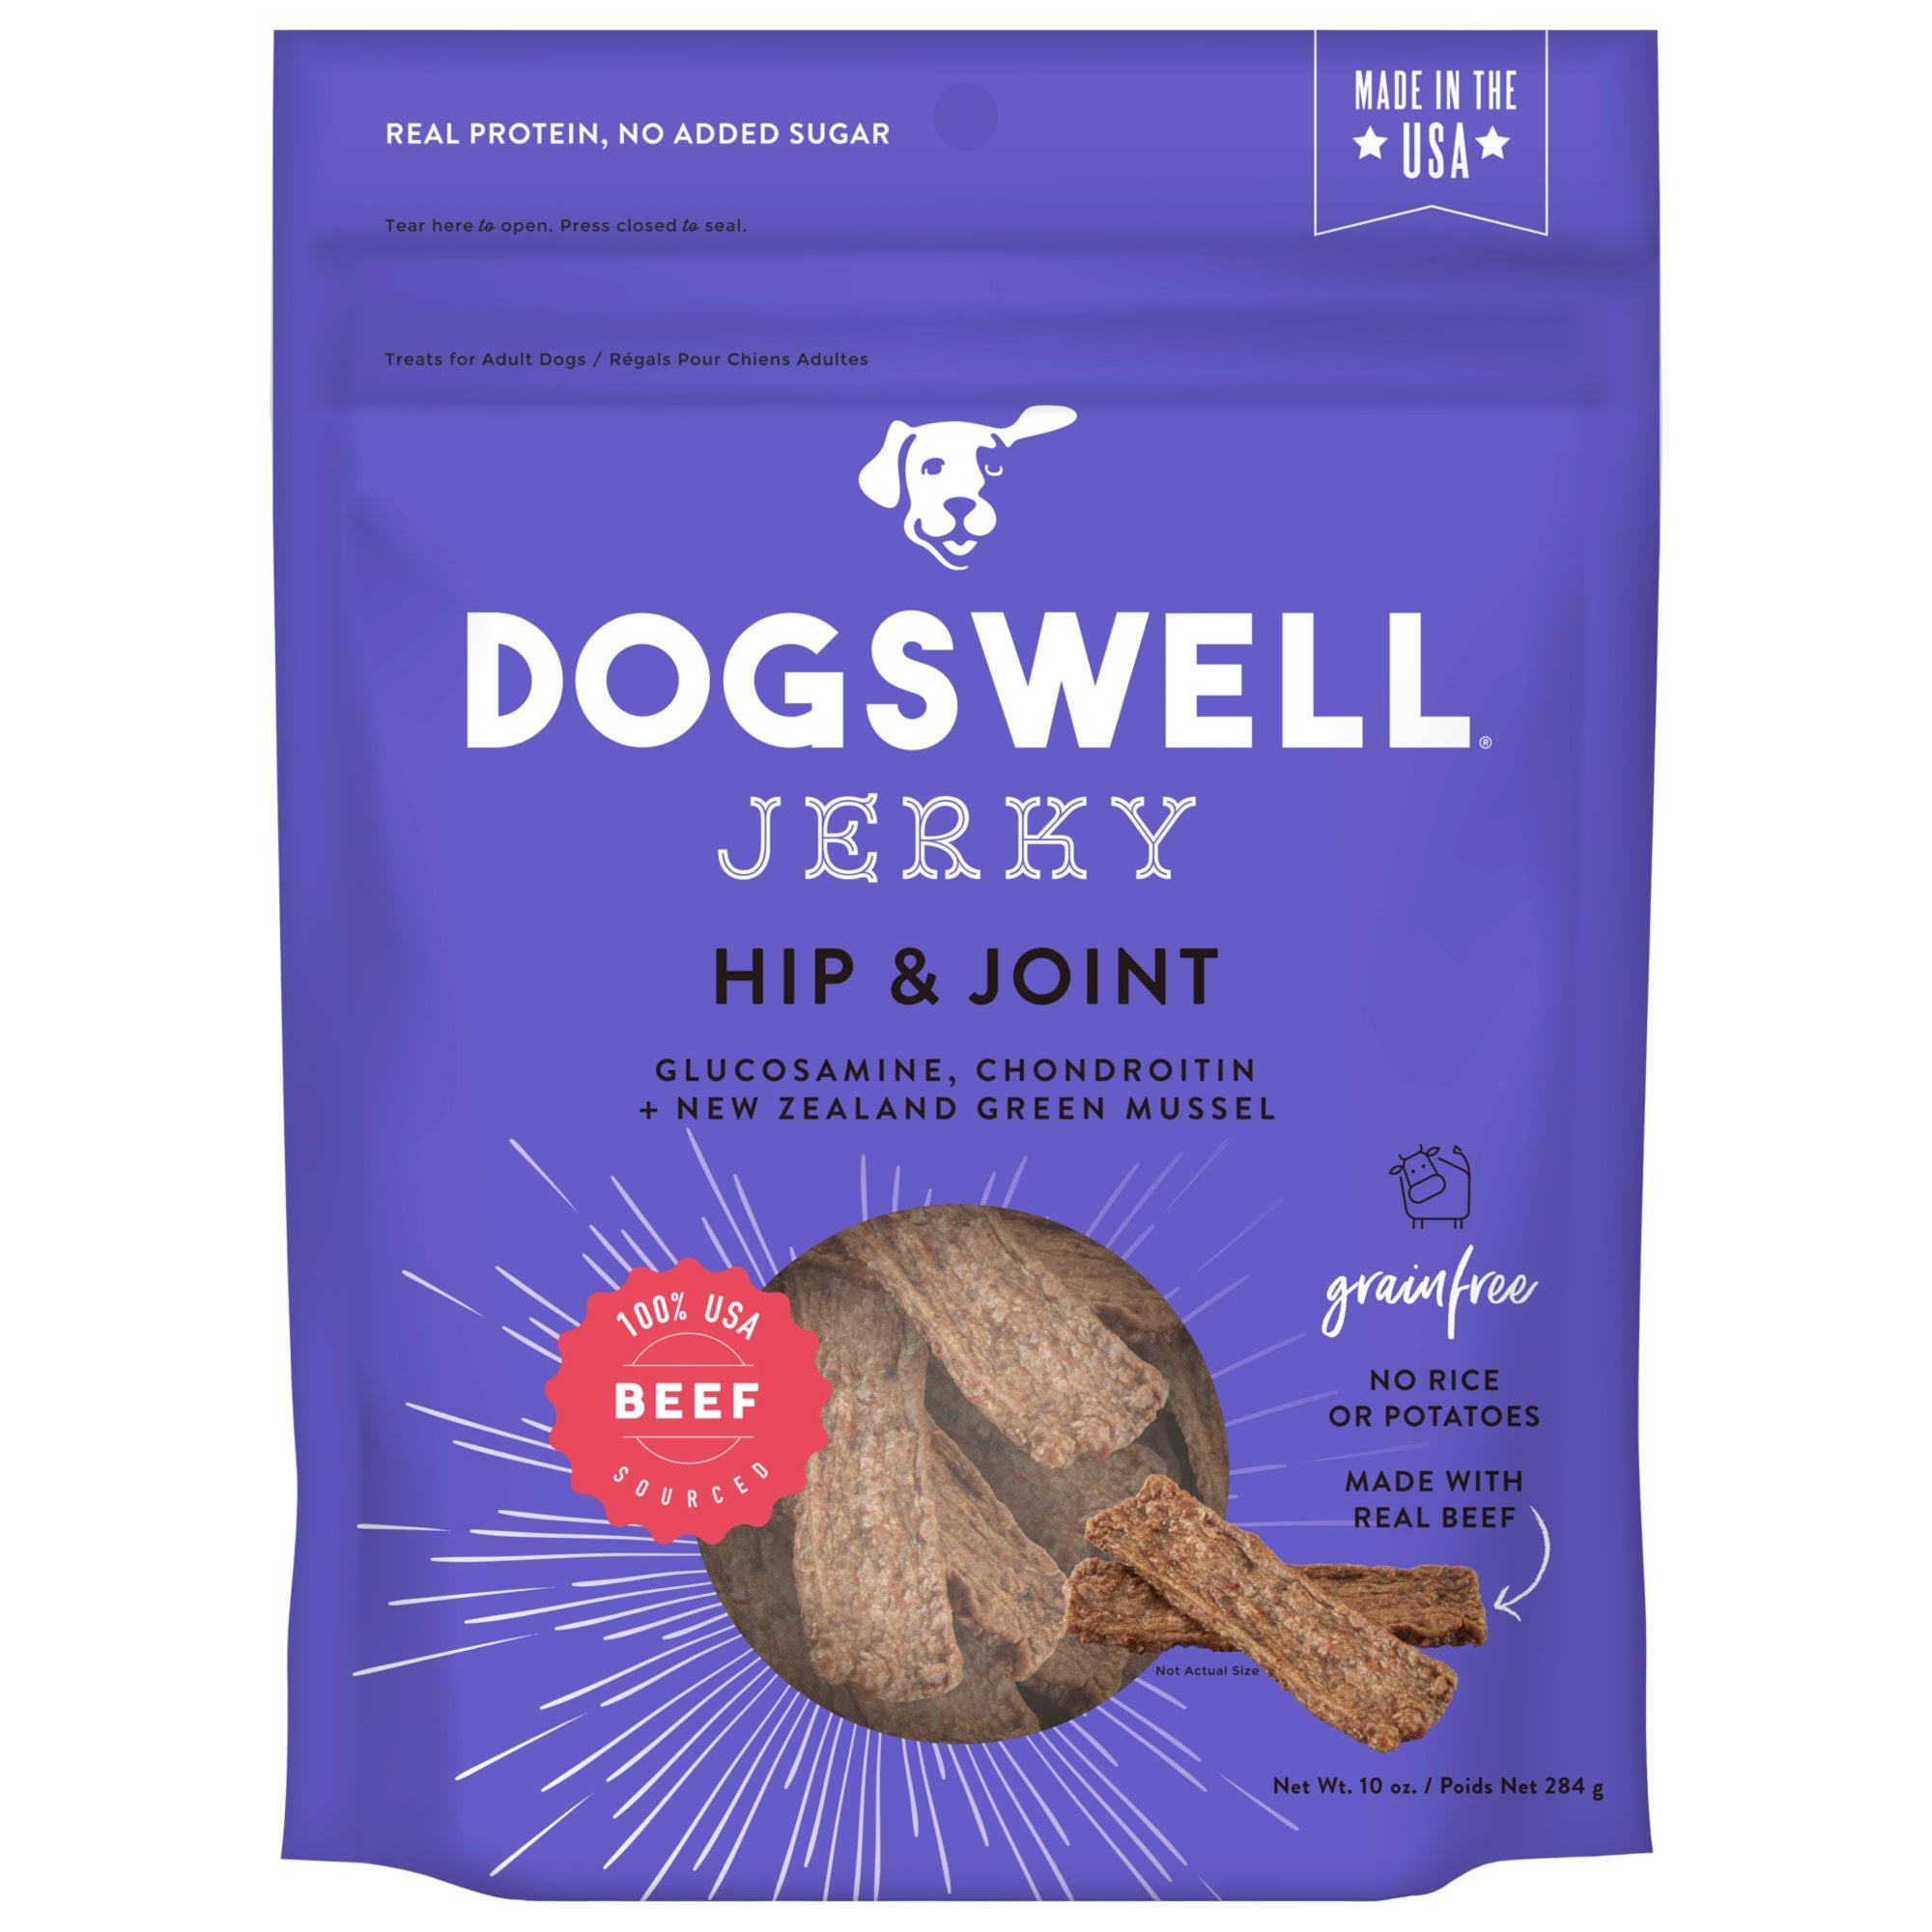 Dogswell Jerky Hip & Joint Dog Treats - Beef - 10 oz